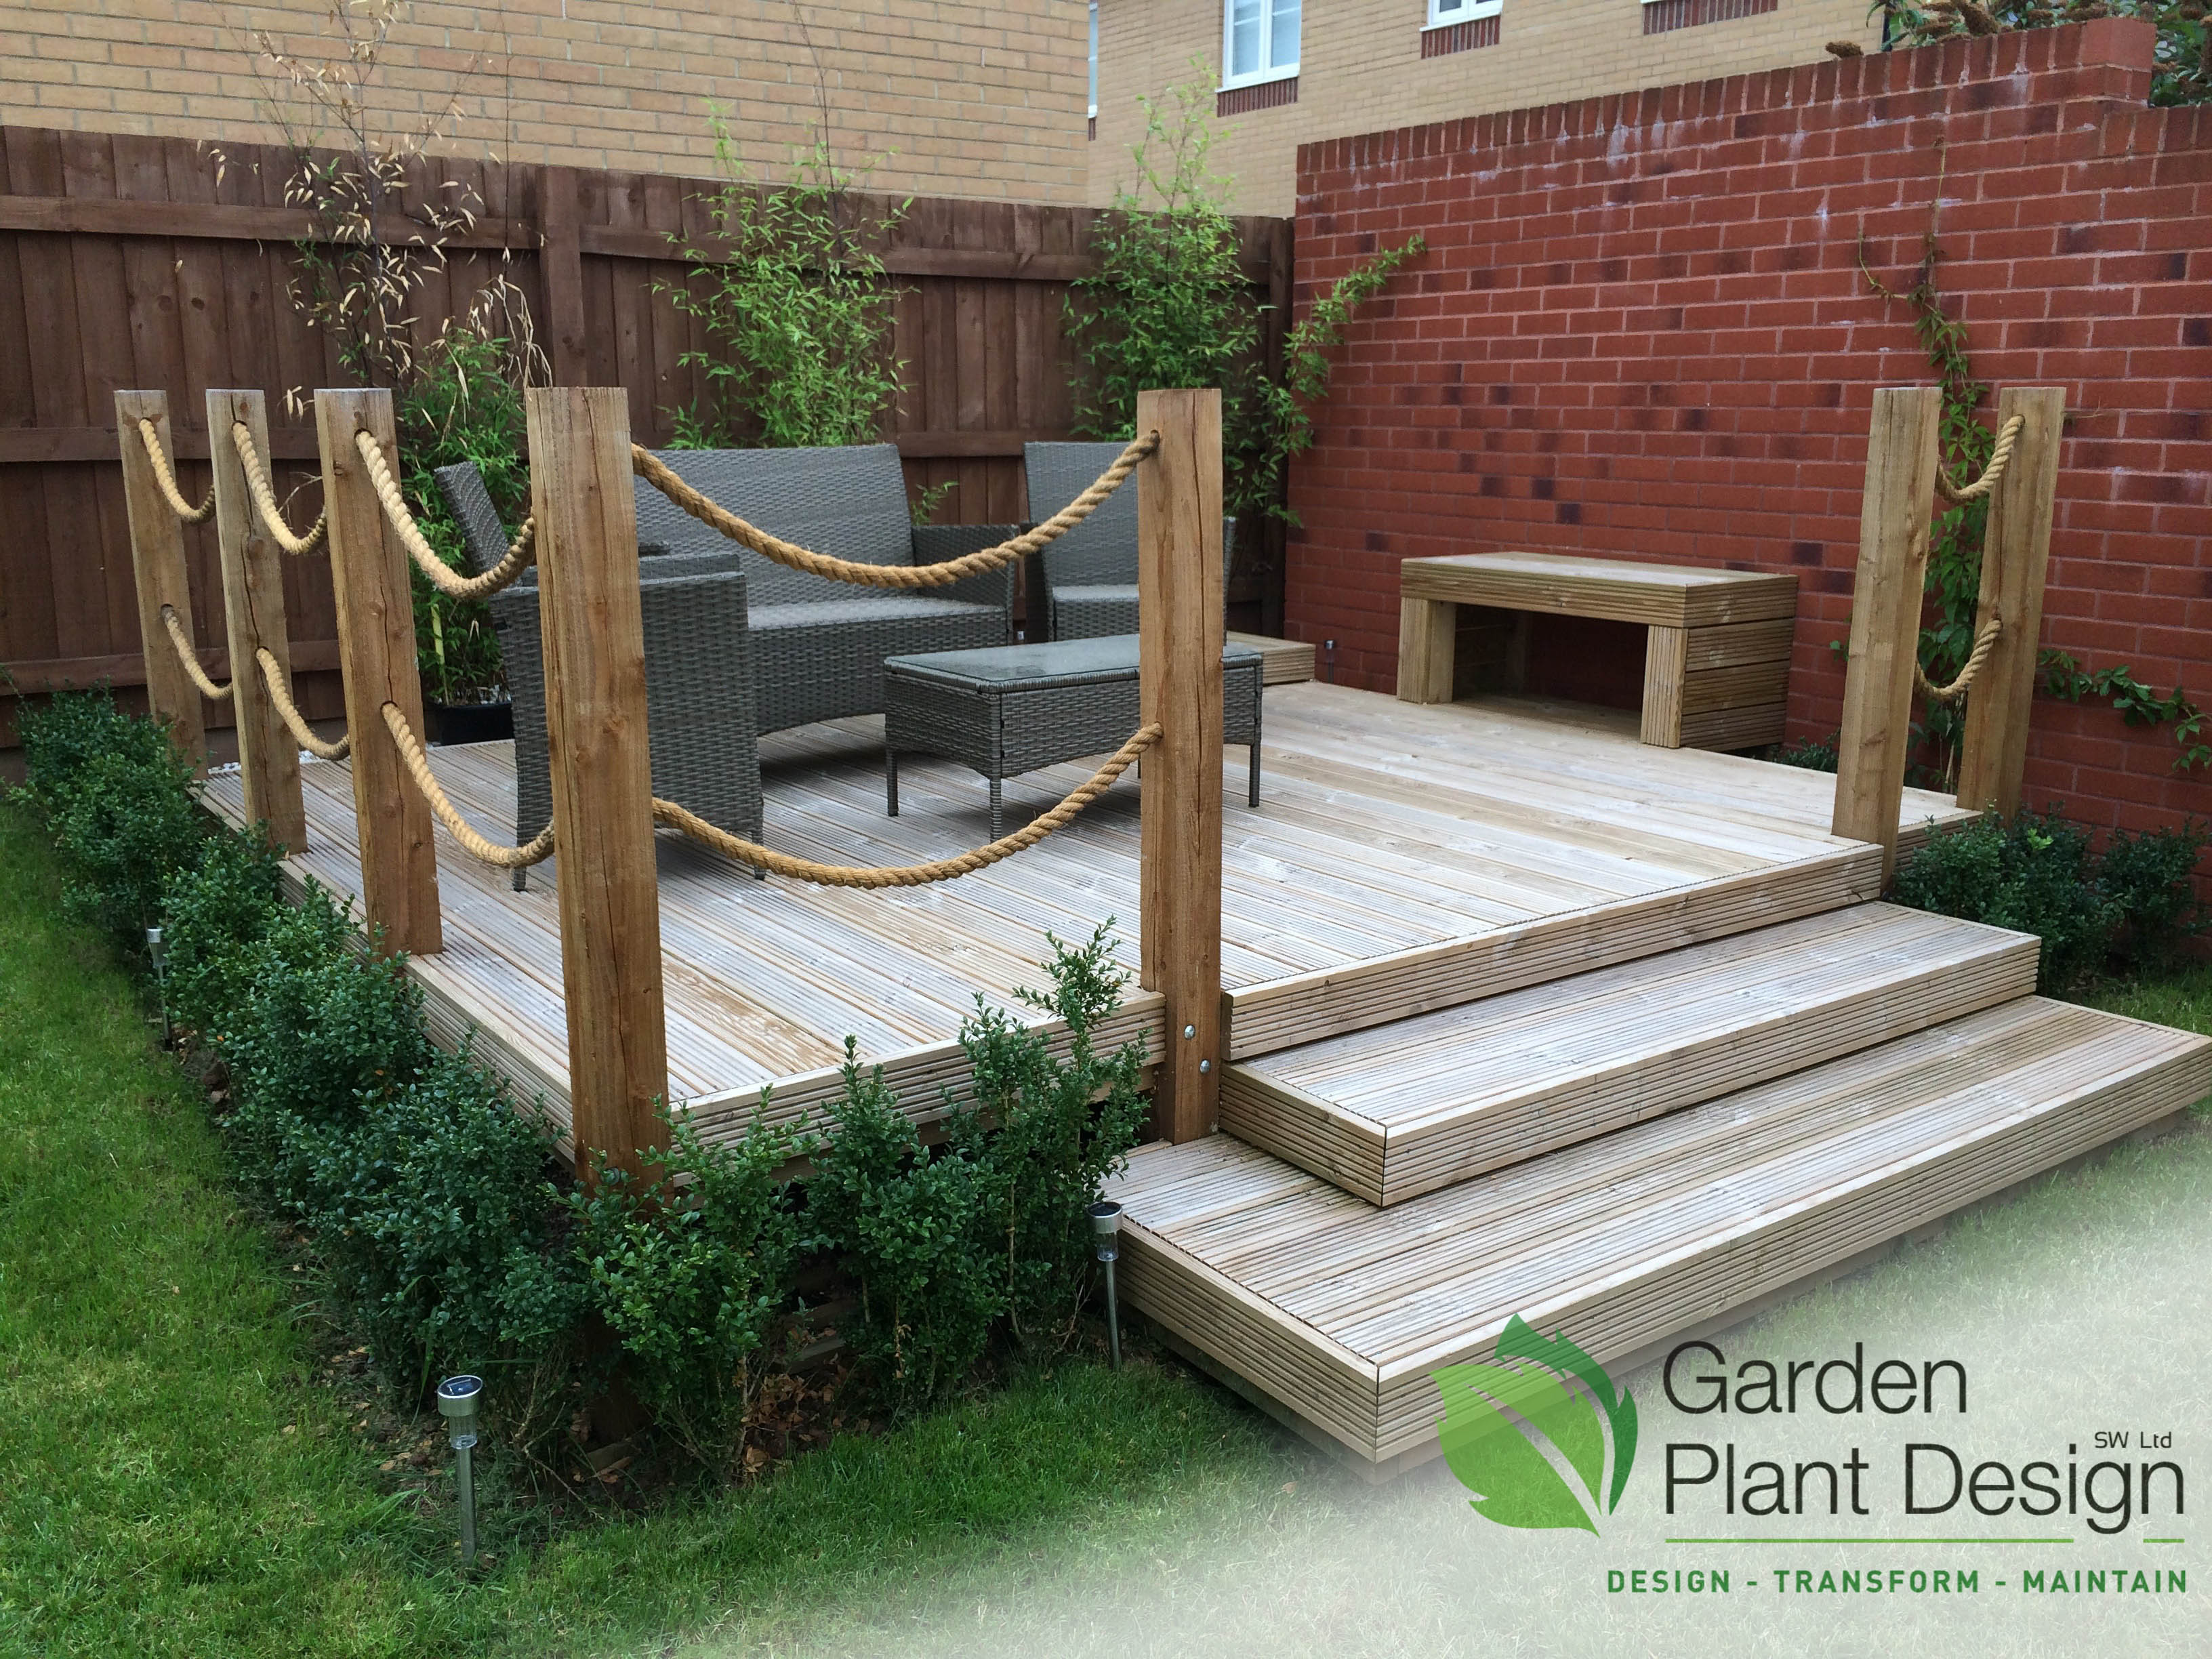 Decking fencing garden plant design for Garden decking fencing